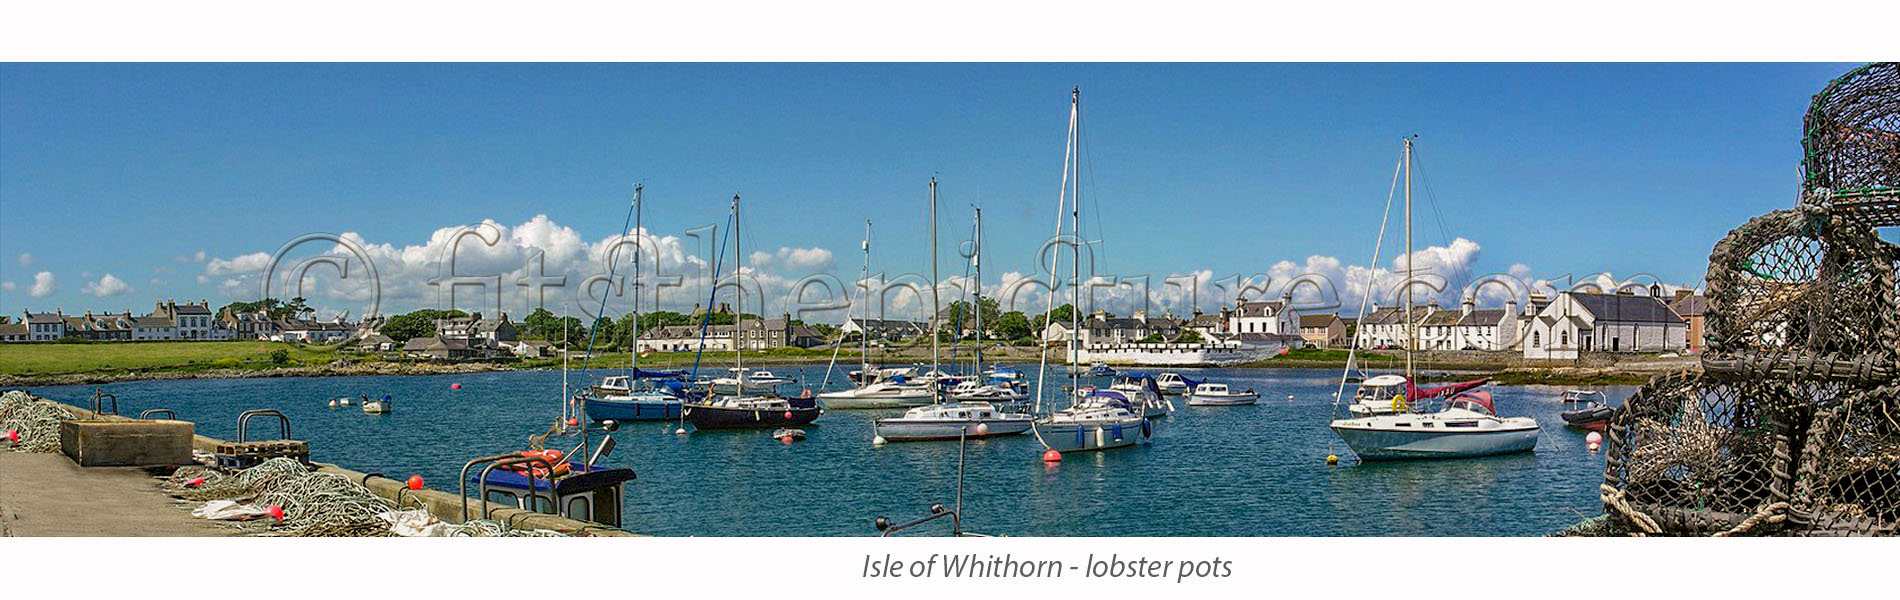 isle_of_whithorn_lobster_pots.jpg